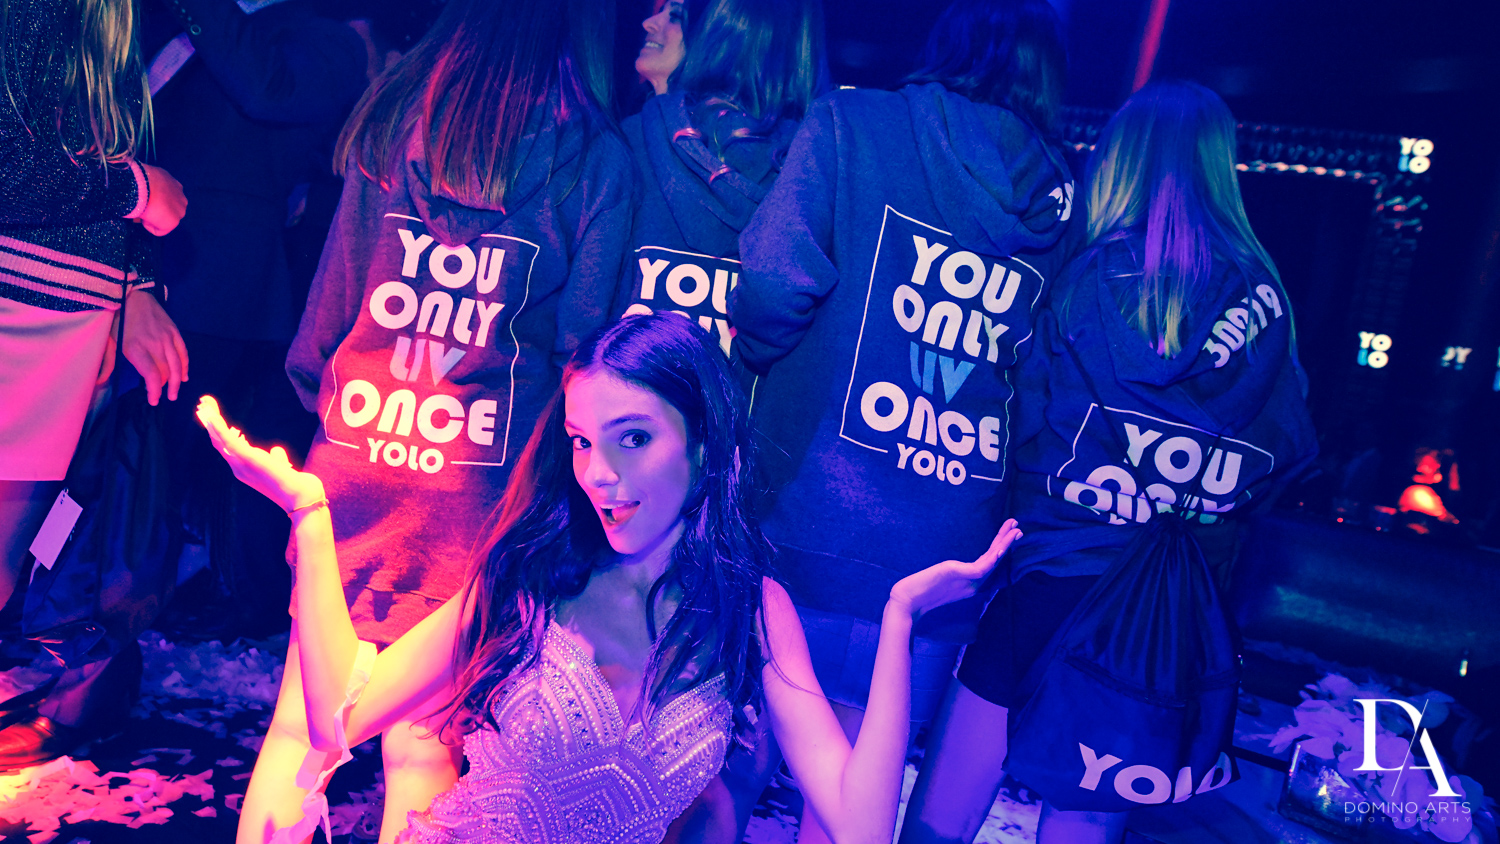 YOLO party favors at Nightclub Bat Mitzvah at LIV in Fontainebleau Miami by Domino Arts Photography